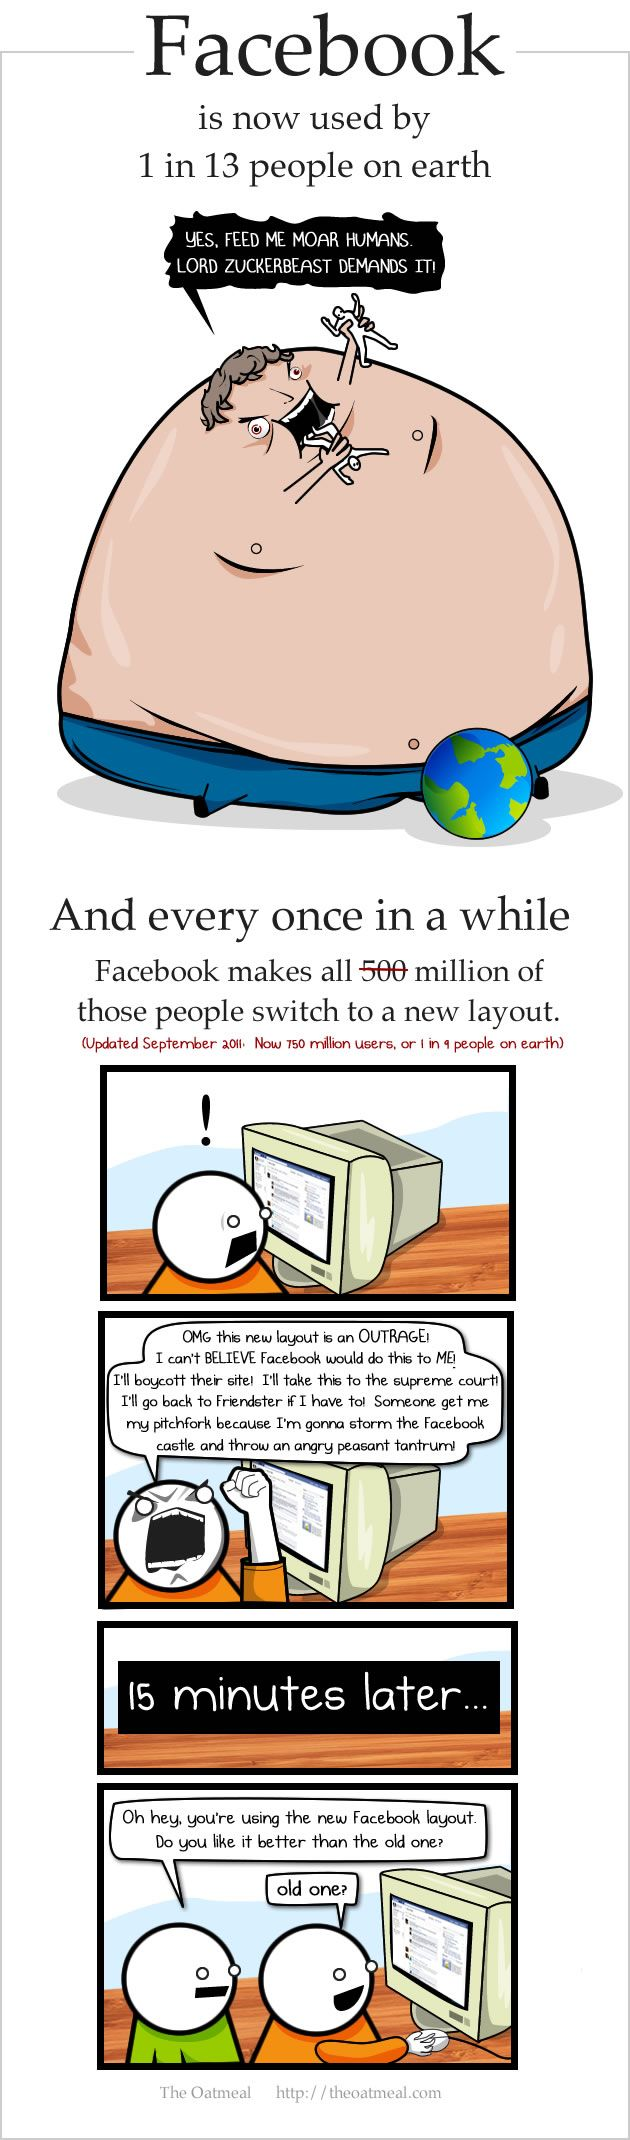 The State of the Web: Facebook is now used by 1 in 13 people on EARTH #facebook #winter2010